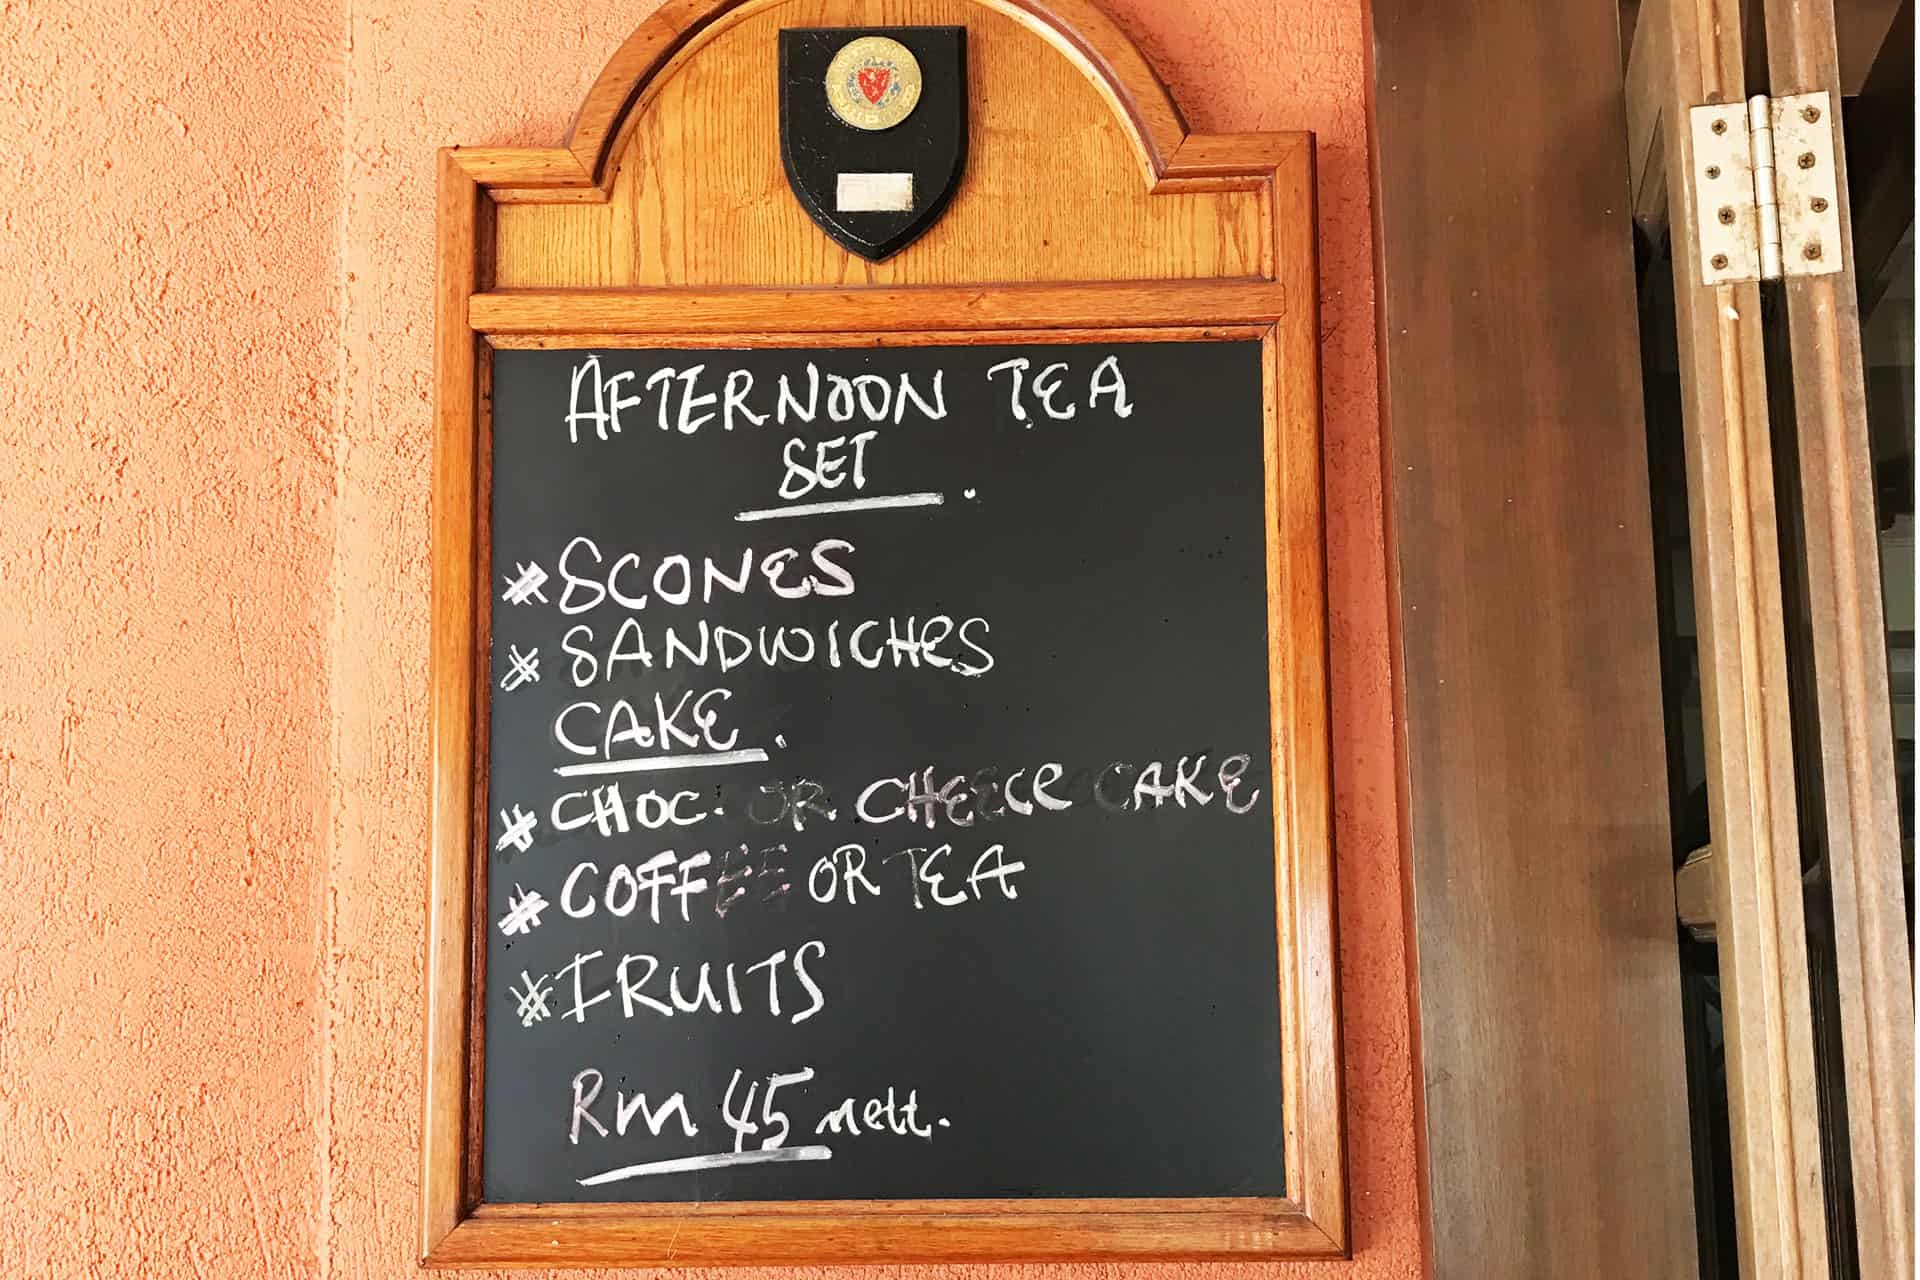 Afternoon Tea Price and Menu